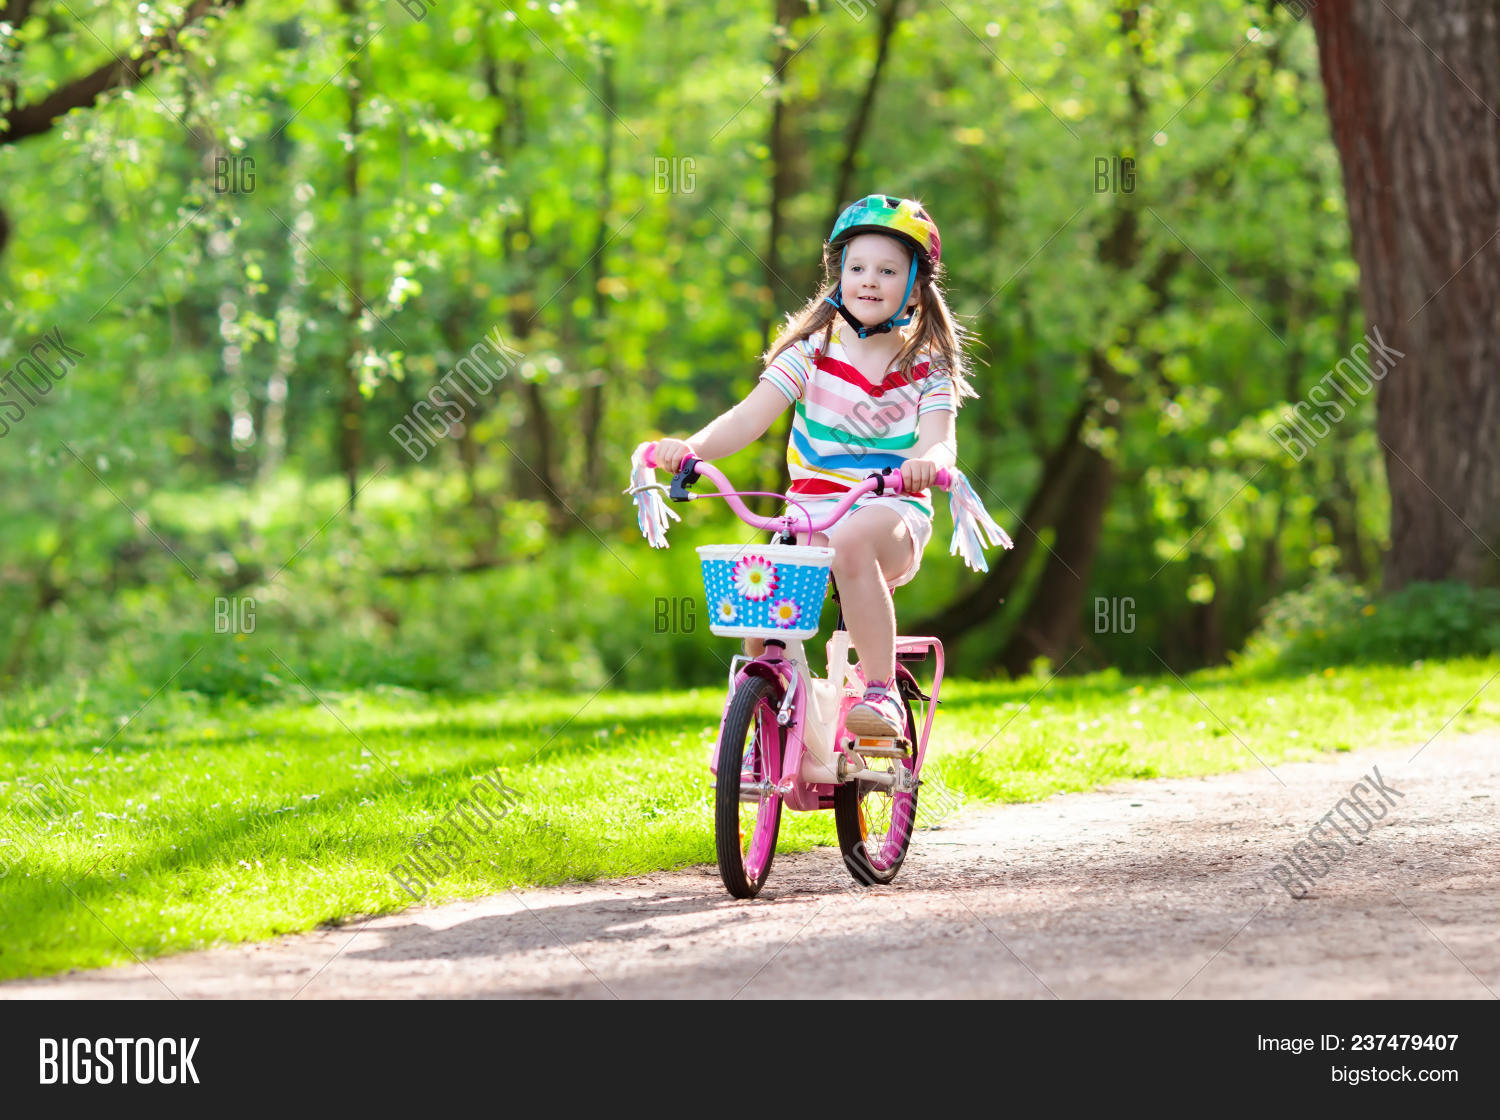 Child On Bike  Kids Image & Photo (Free Trial) | Bigstock